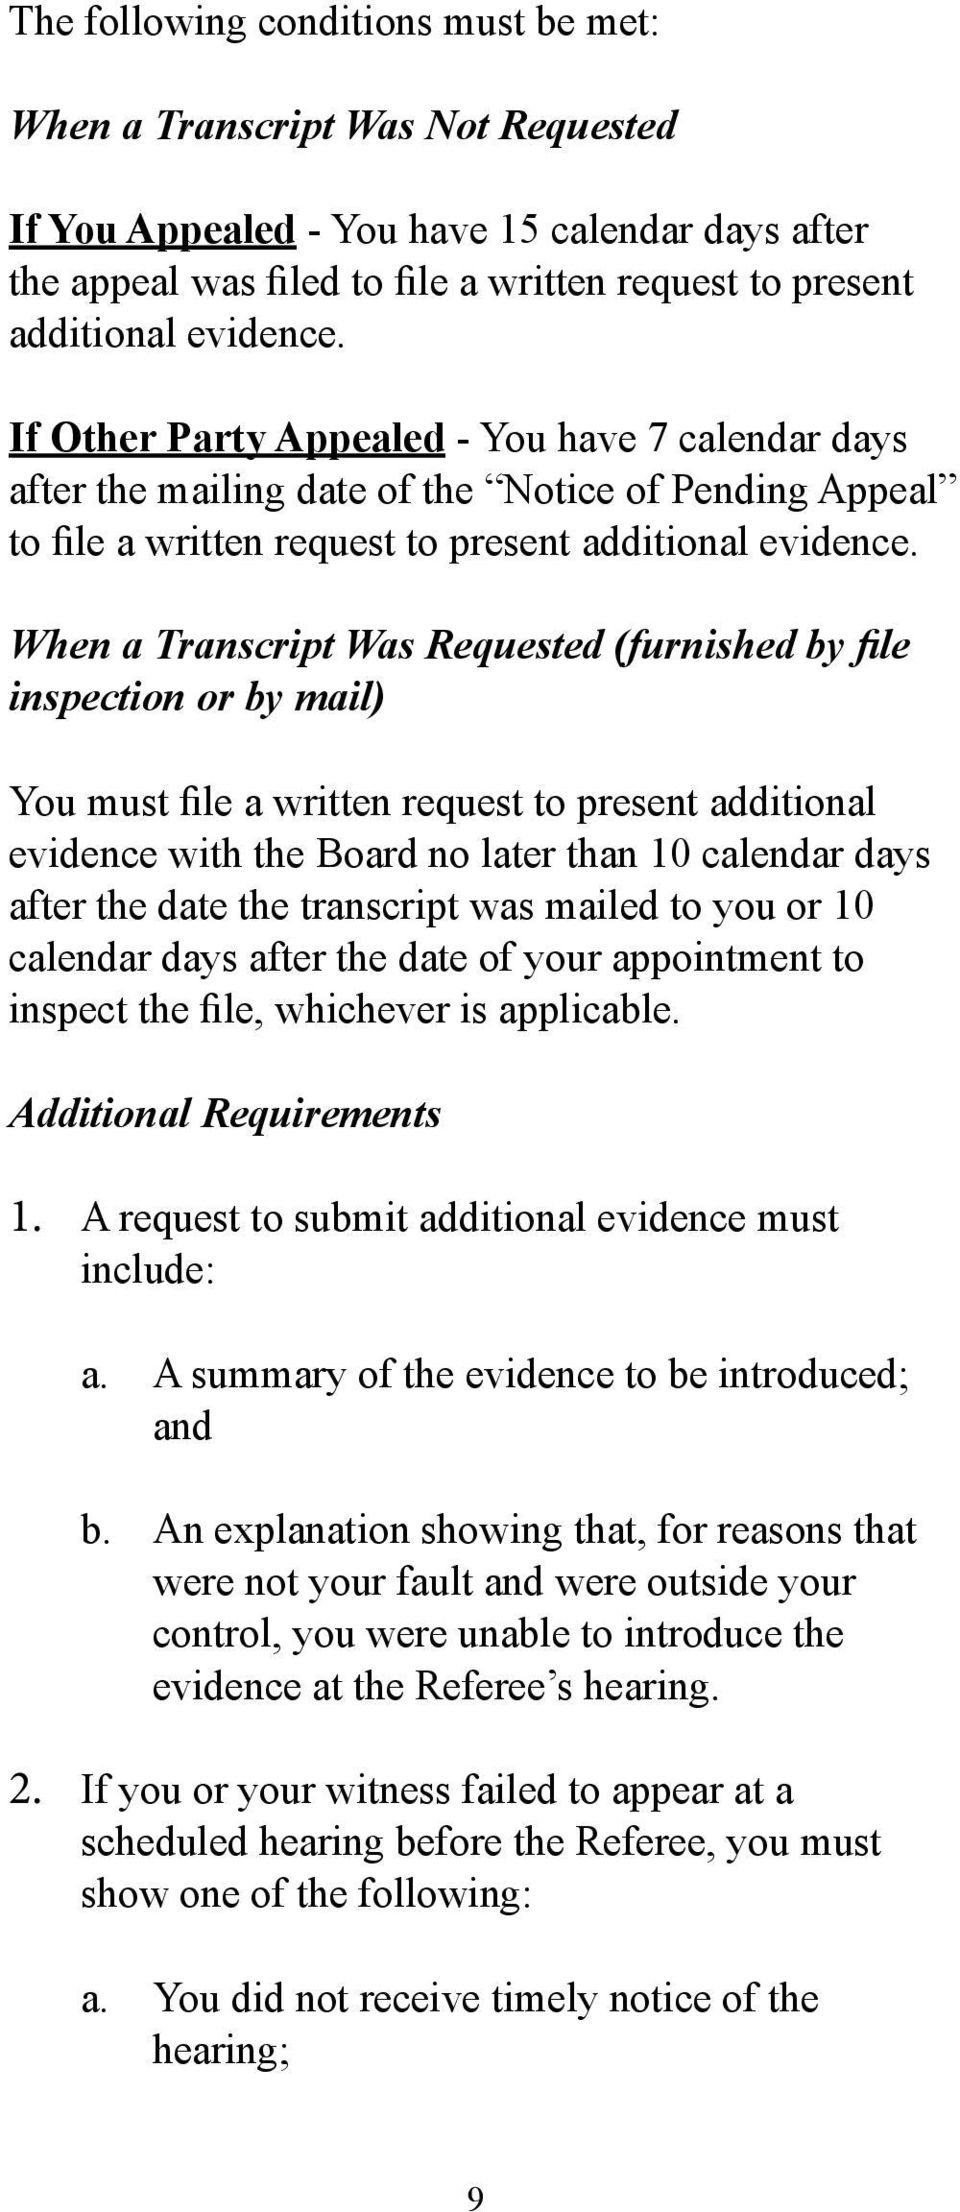 When a Transcript Was Requested (furnished by file inspection or by mail) You must file a written request to present additional evidence with the Board no later than 10 calendar days after the date